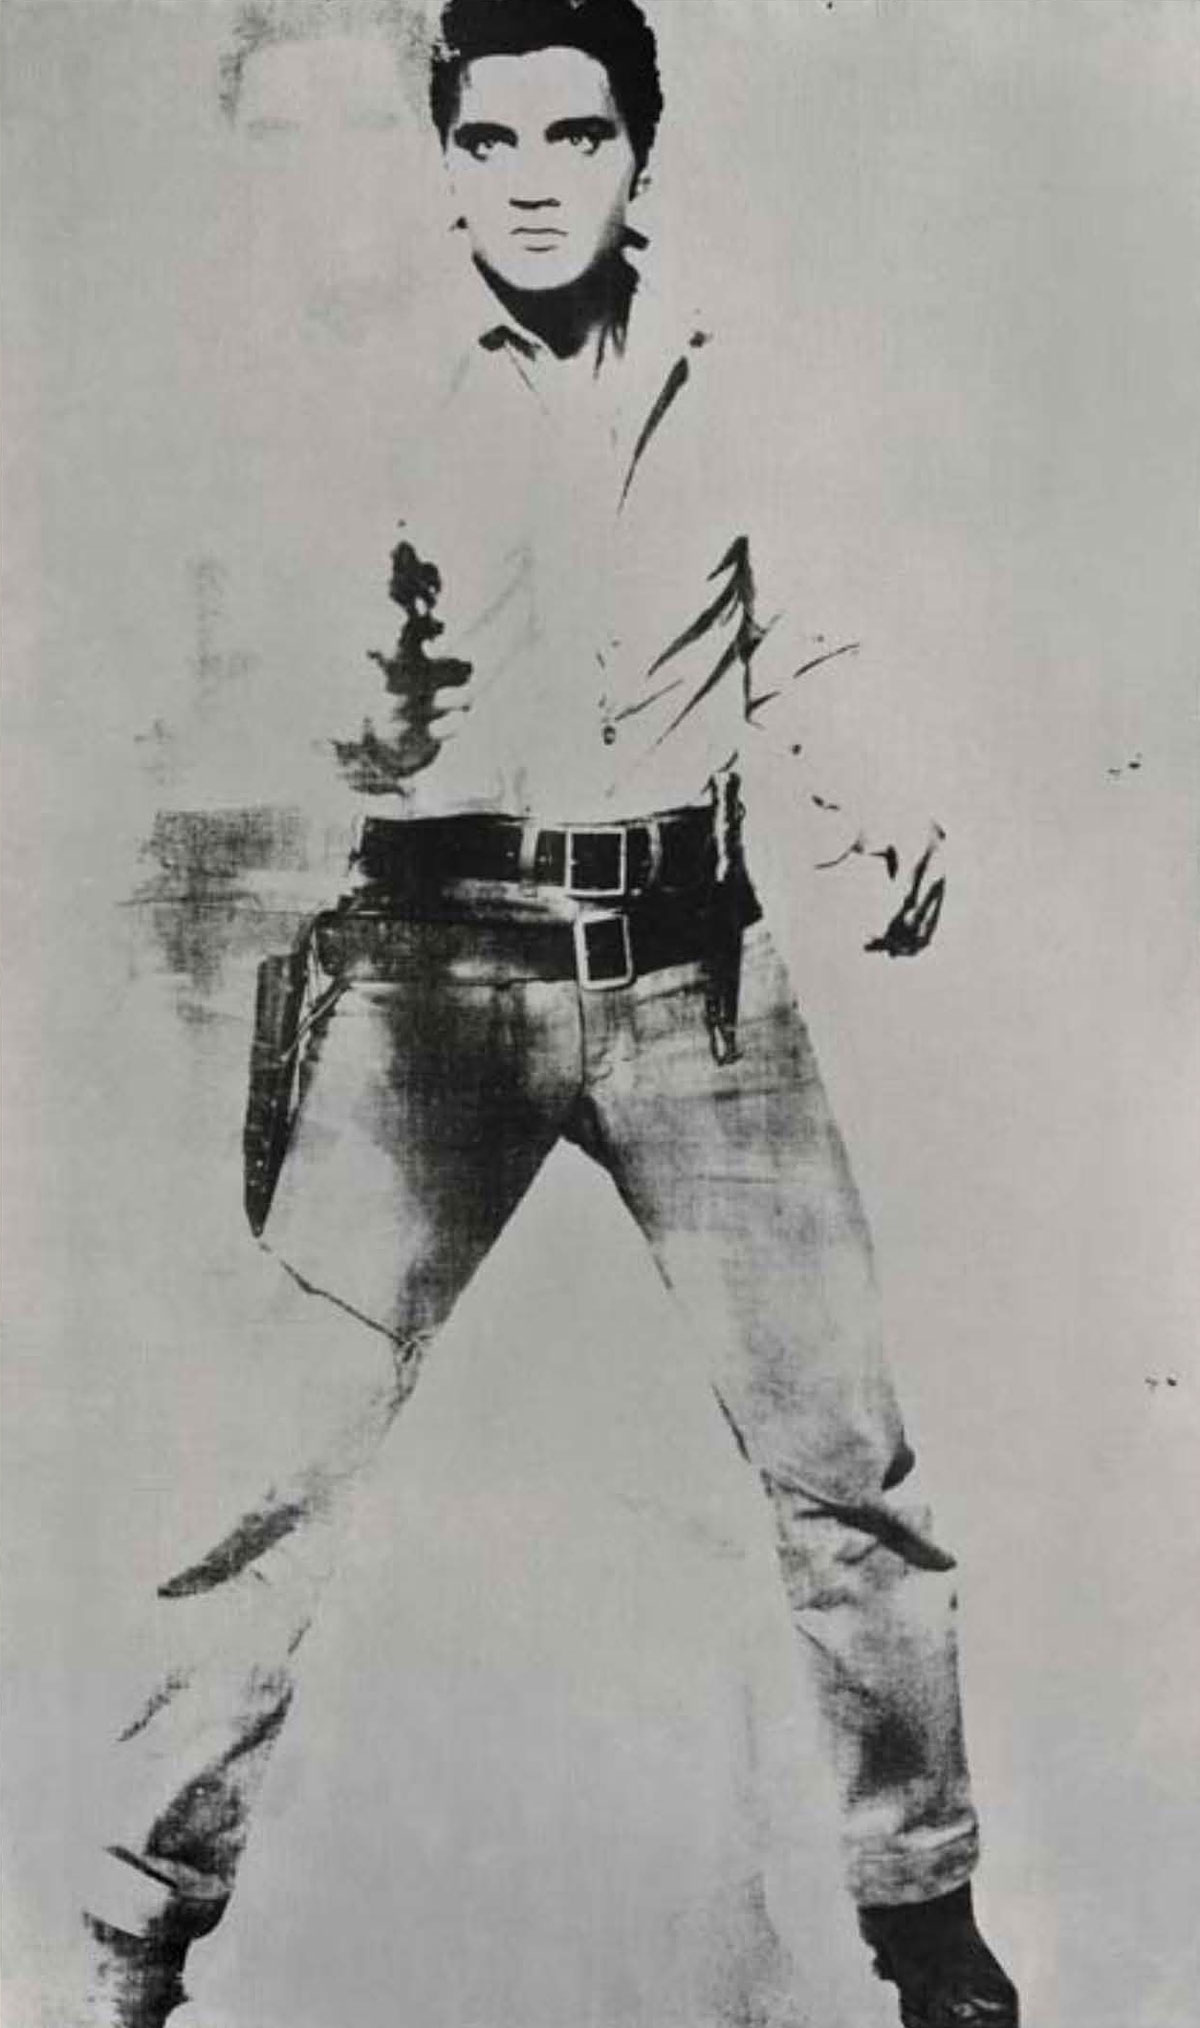 andy warhols double elvis could fetch 50 million